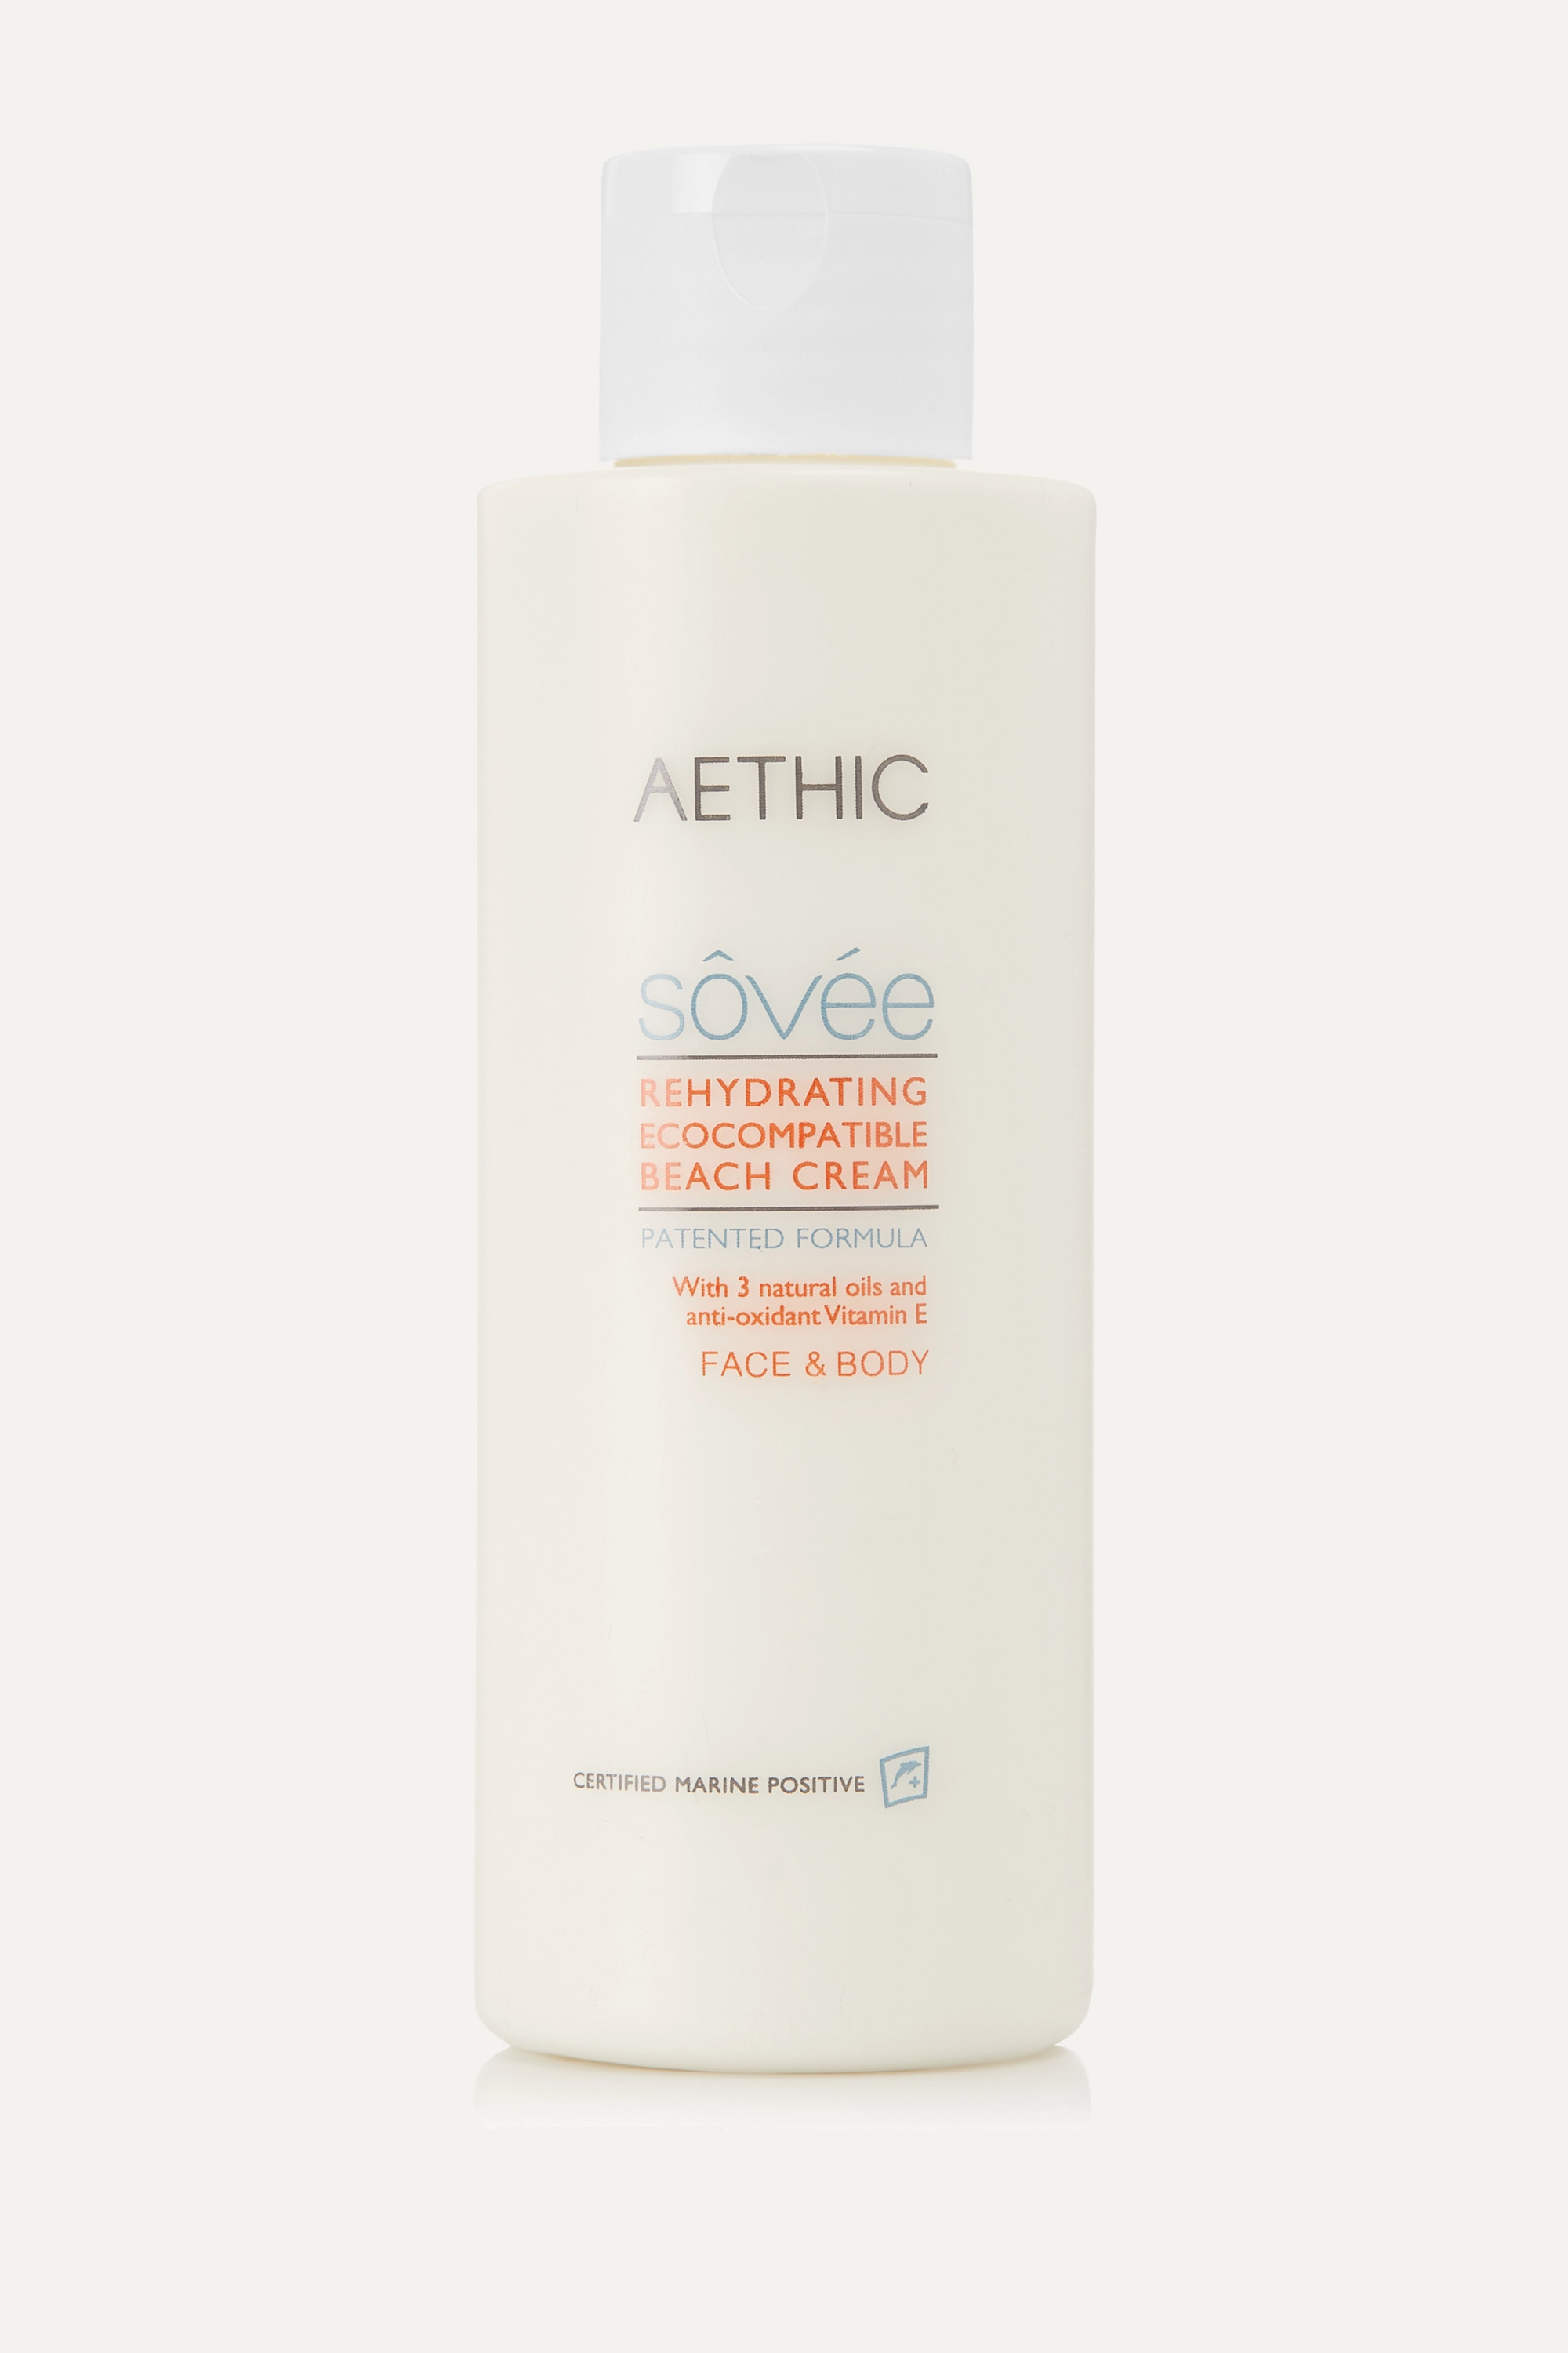 Aethic Rehydrating Eco-Compatible Beach Cream, 150ml